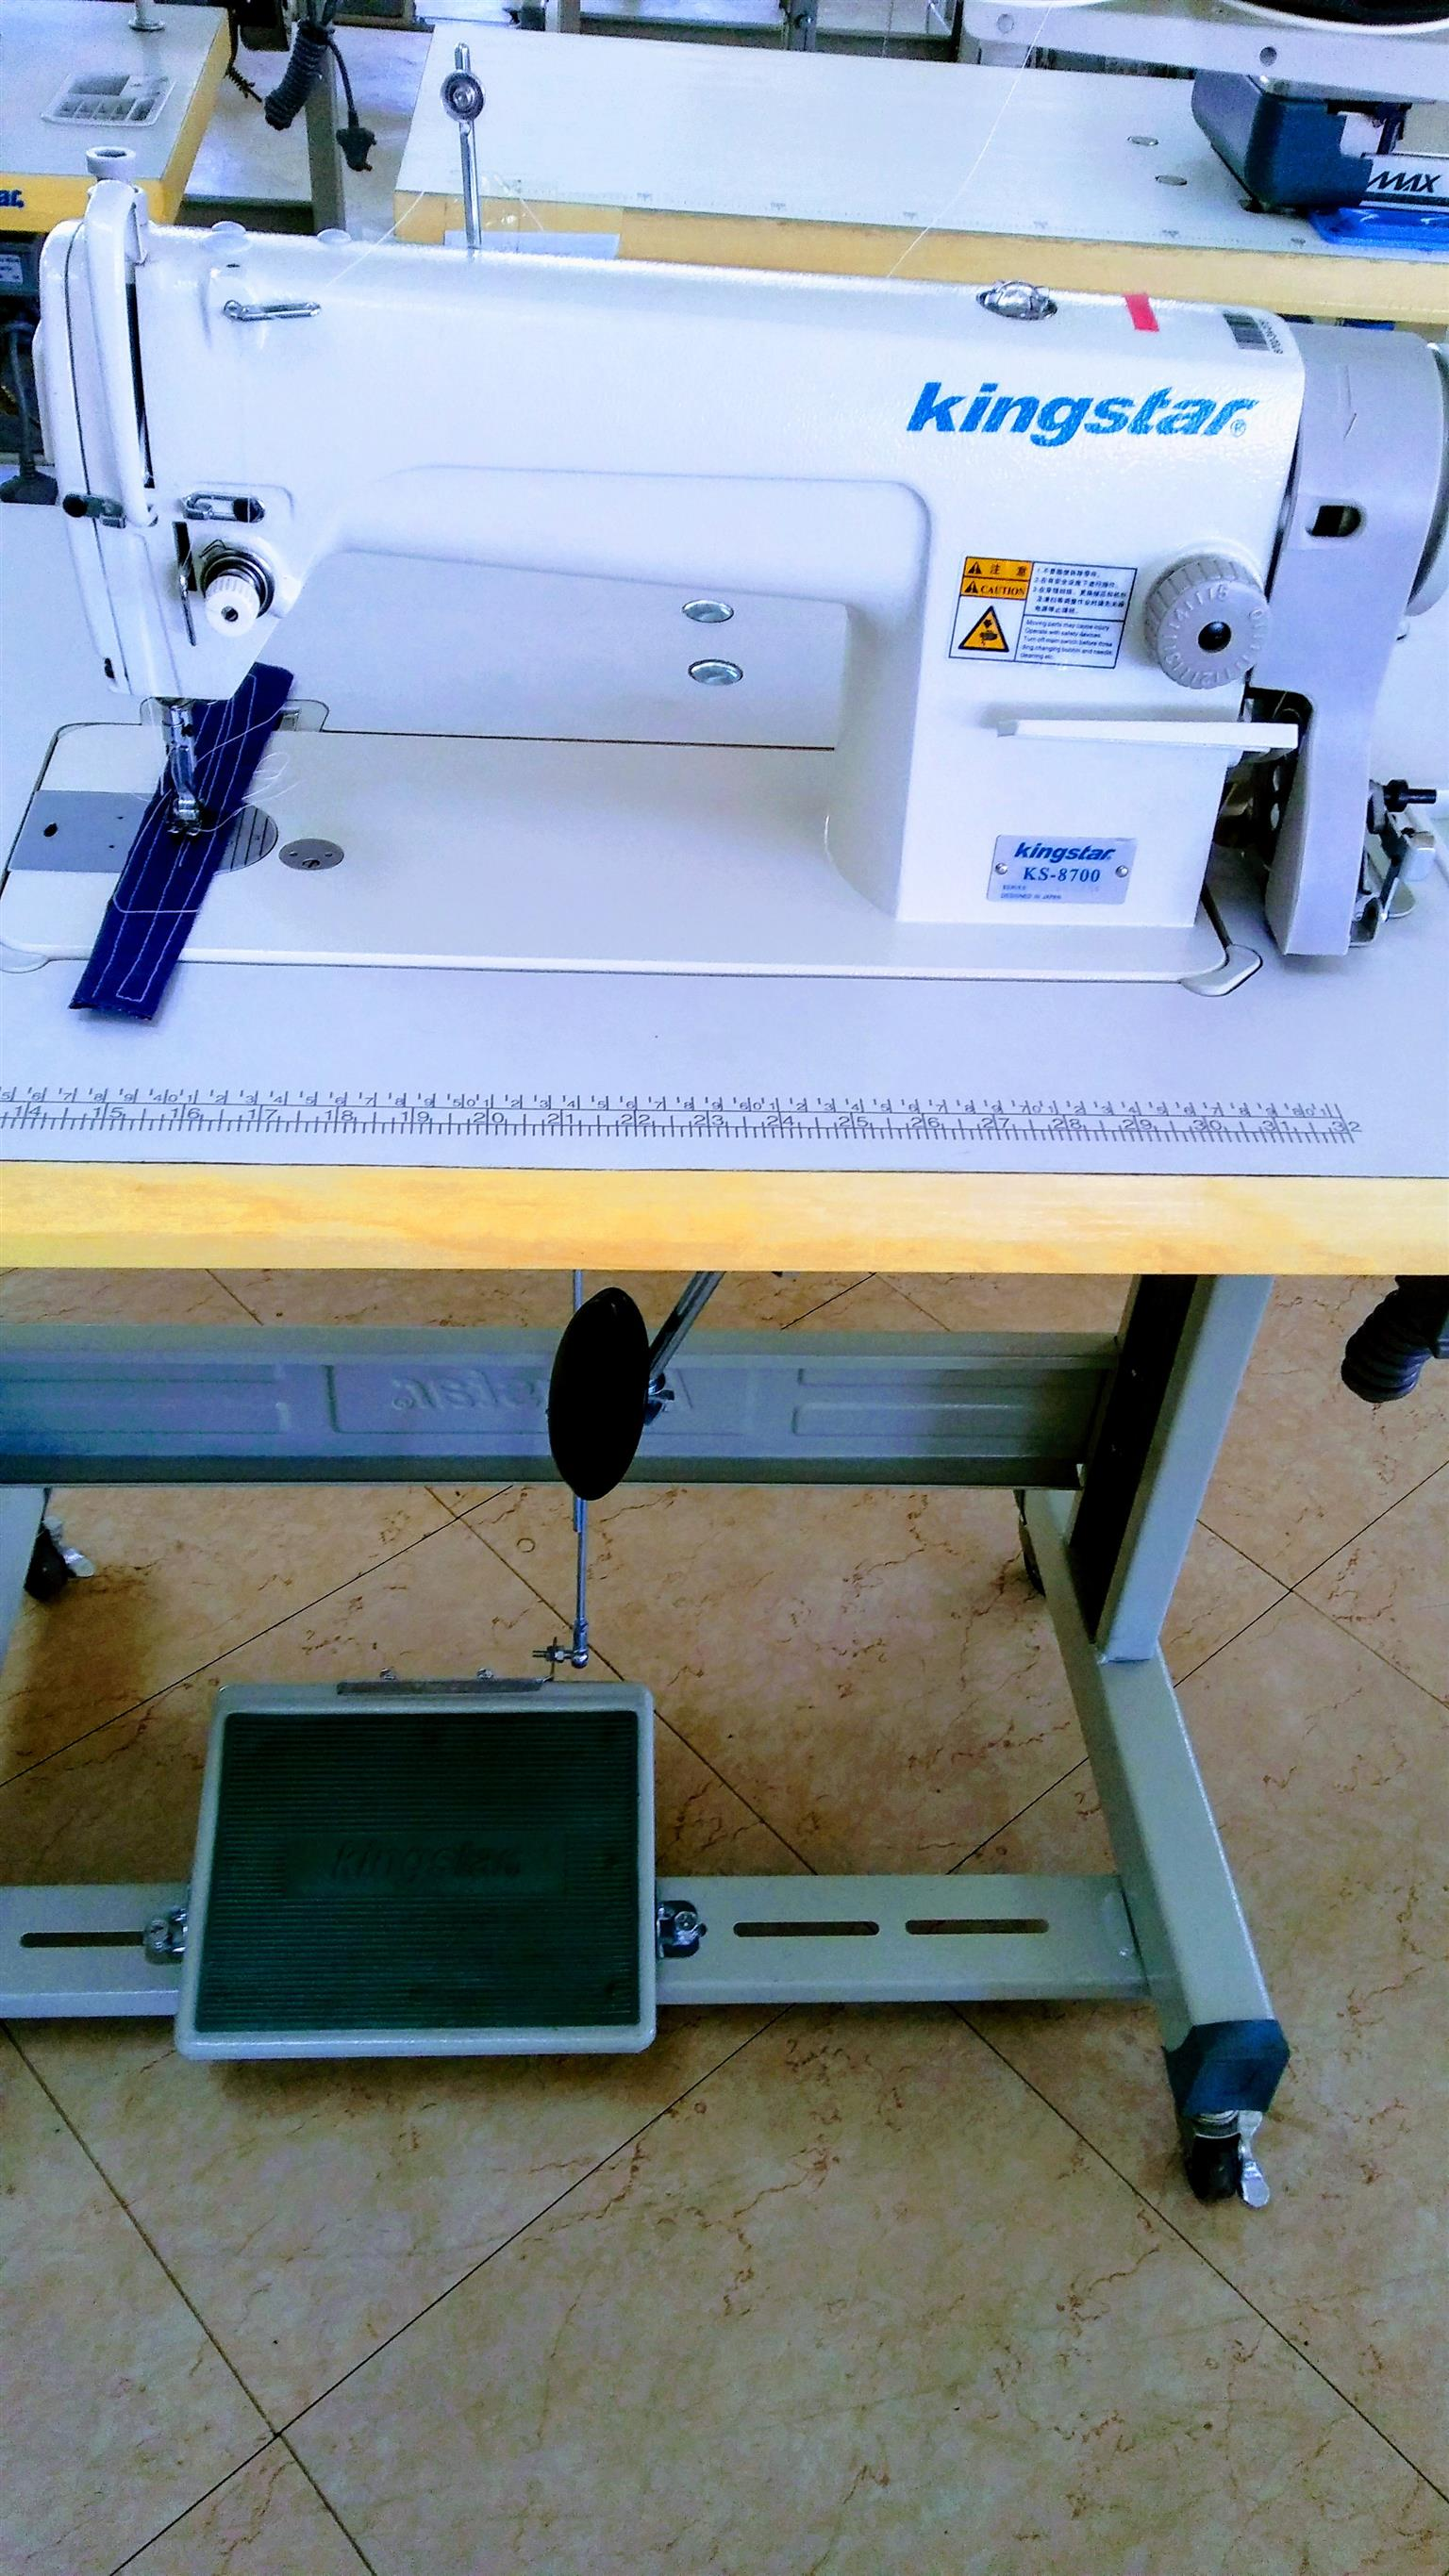 NEW Industrial Sewing Machine Junk Mail Stunning Industrial Sewing Machine For Sale Gauteng